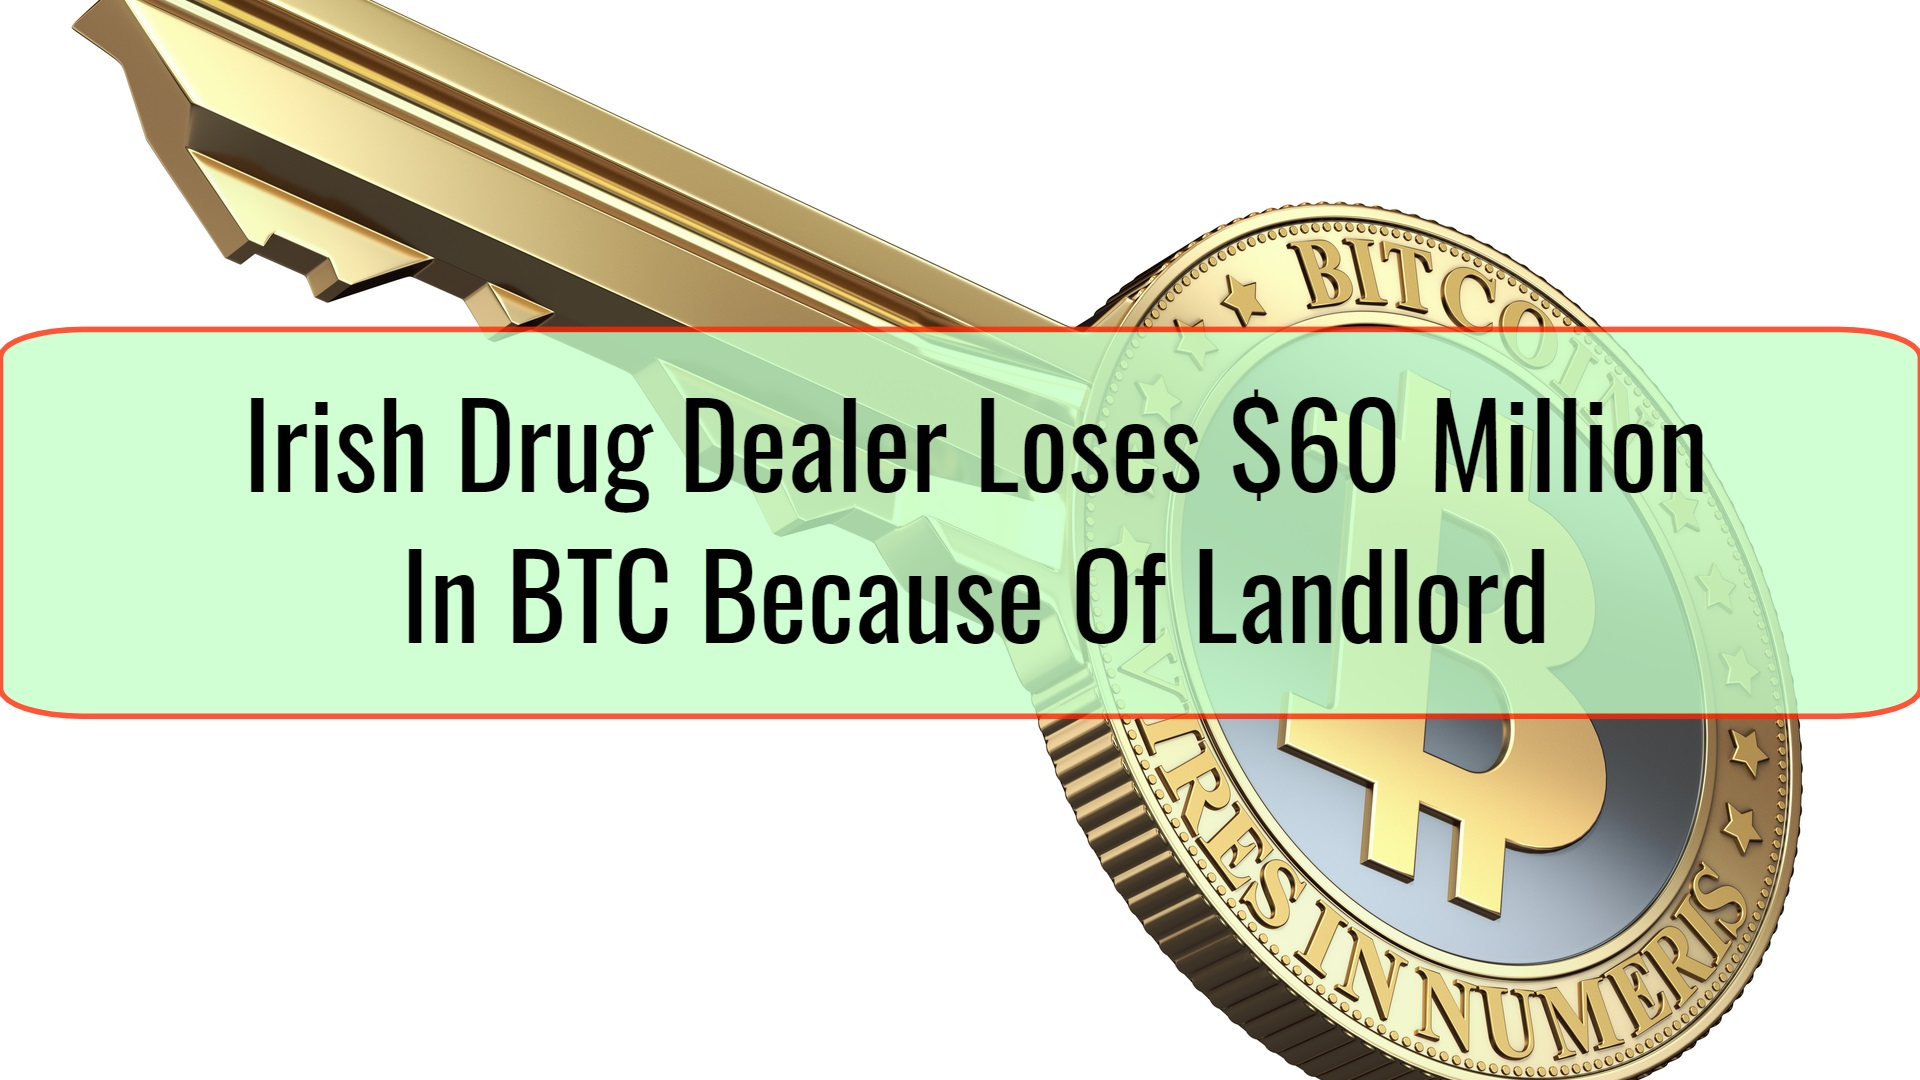 Irish Drug Dealer Loses $60 Million In BTC Because Of Landlord